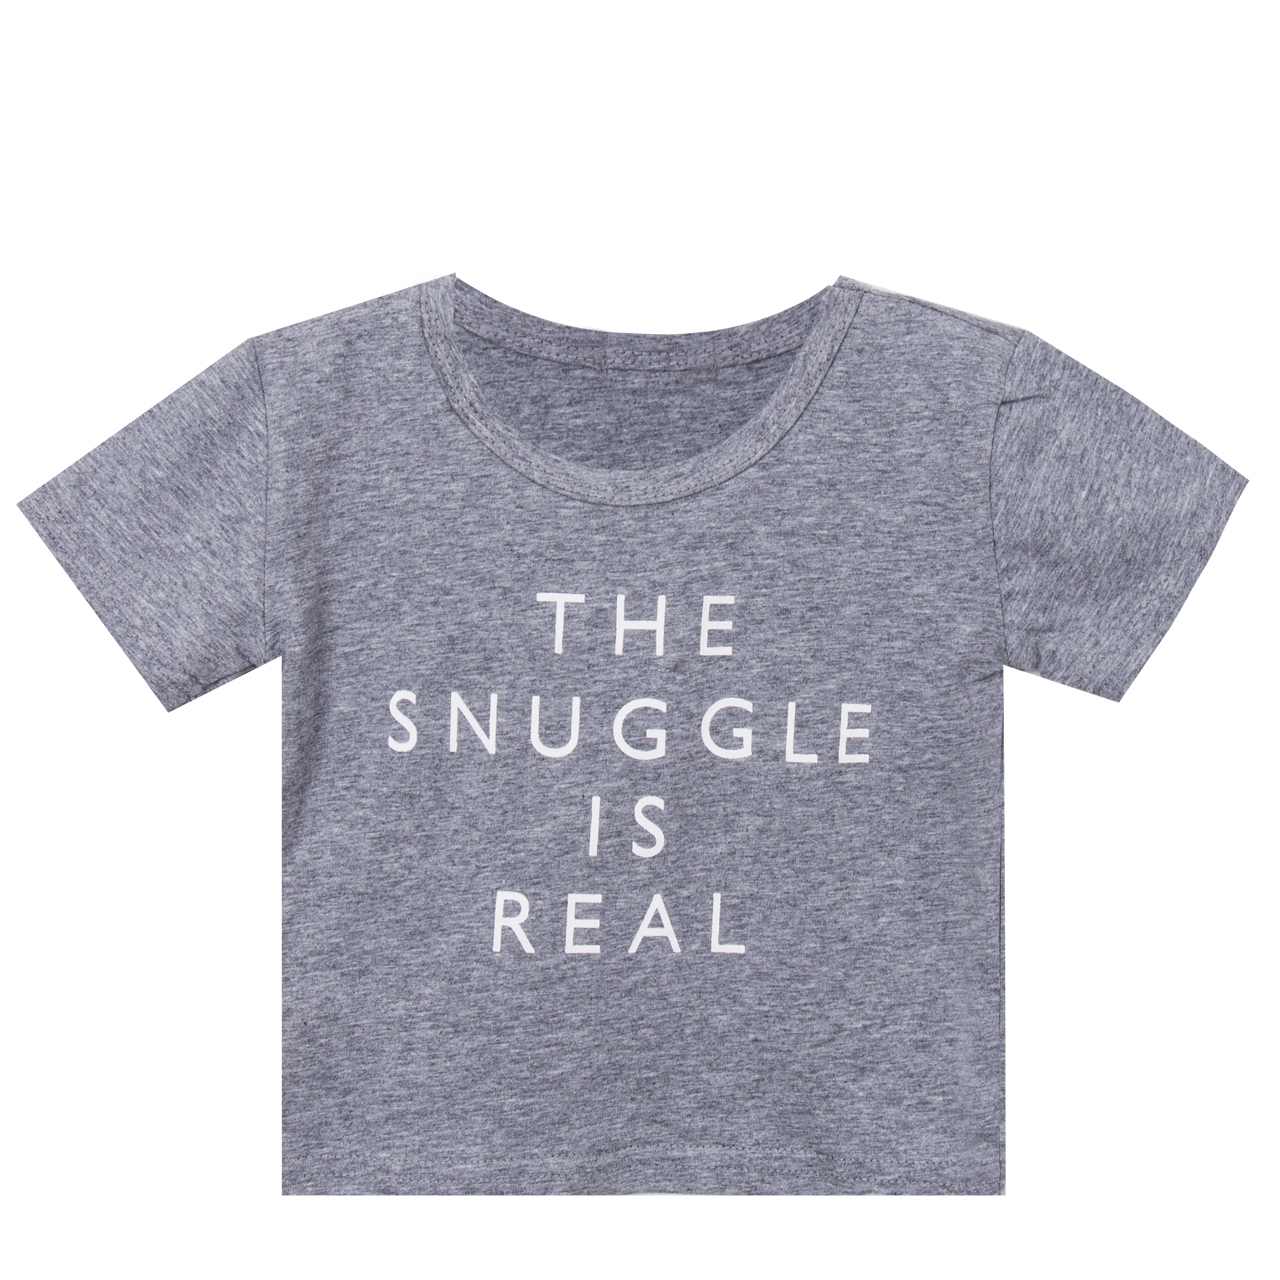 Newborn Kid Summer Clothes The Snuggle Is Real Baby Boys